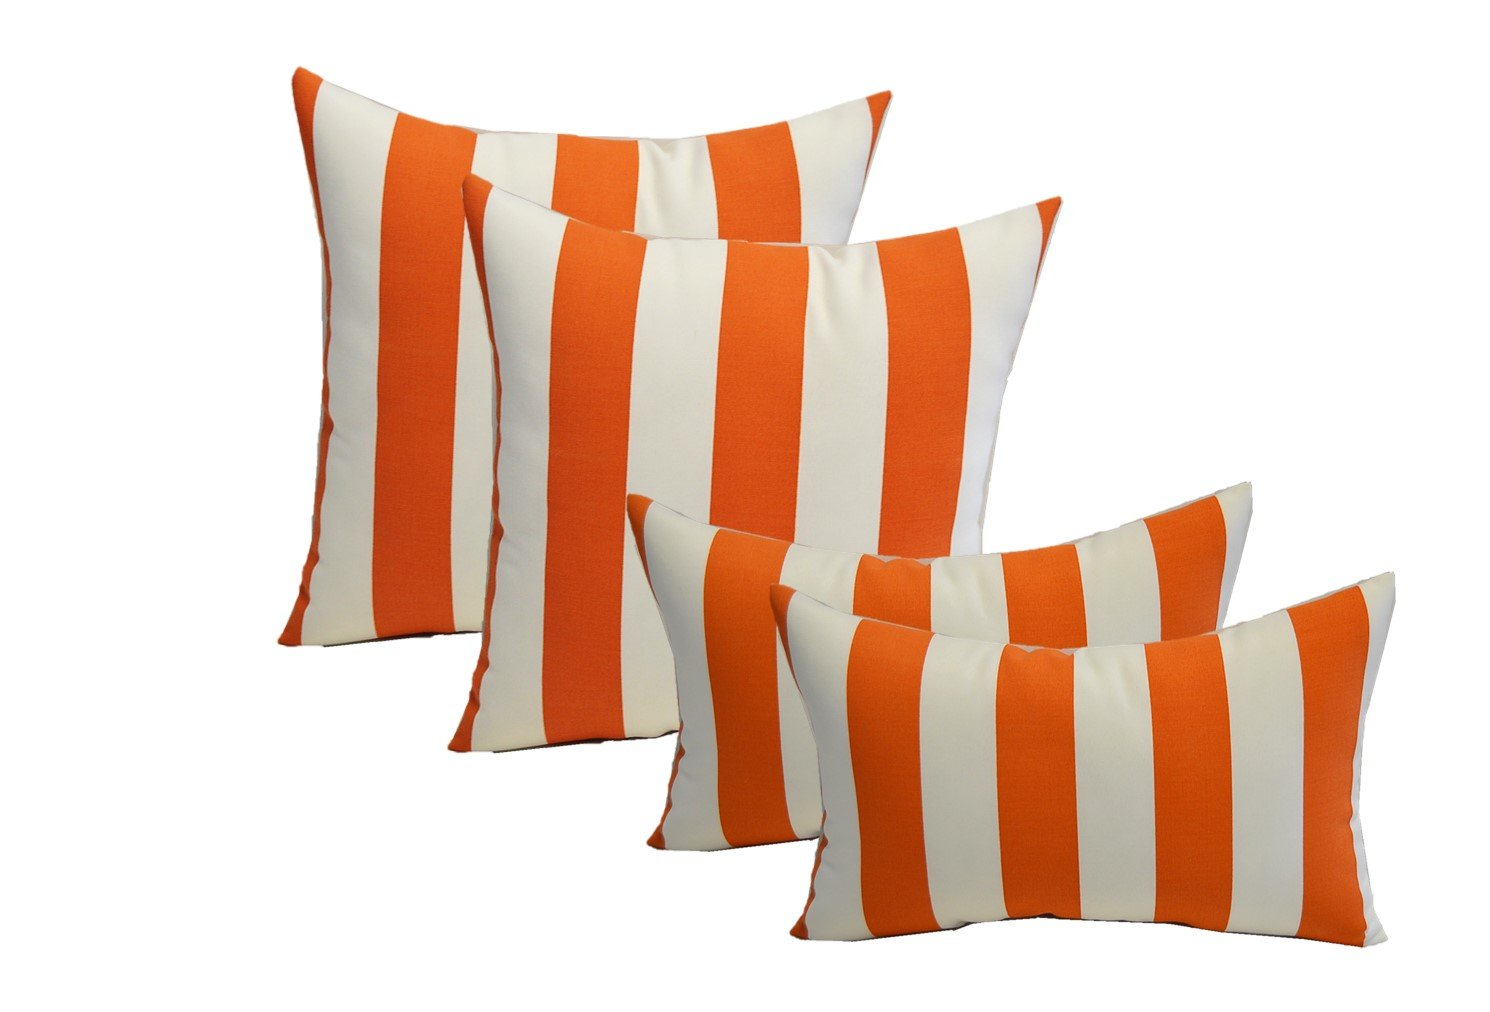 Resort Spa Home Set of 4 Indoor/Outdoor Pillow Covers - 2 Square & 2 Rectangle/Lumbar - Preppy Orange and White Stripe - Choose Size (17'')